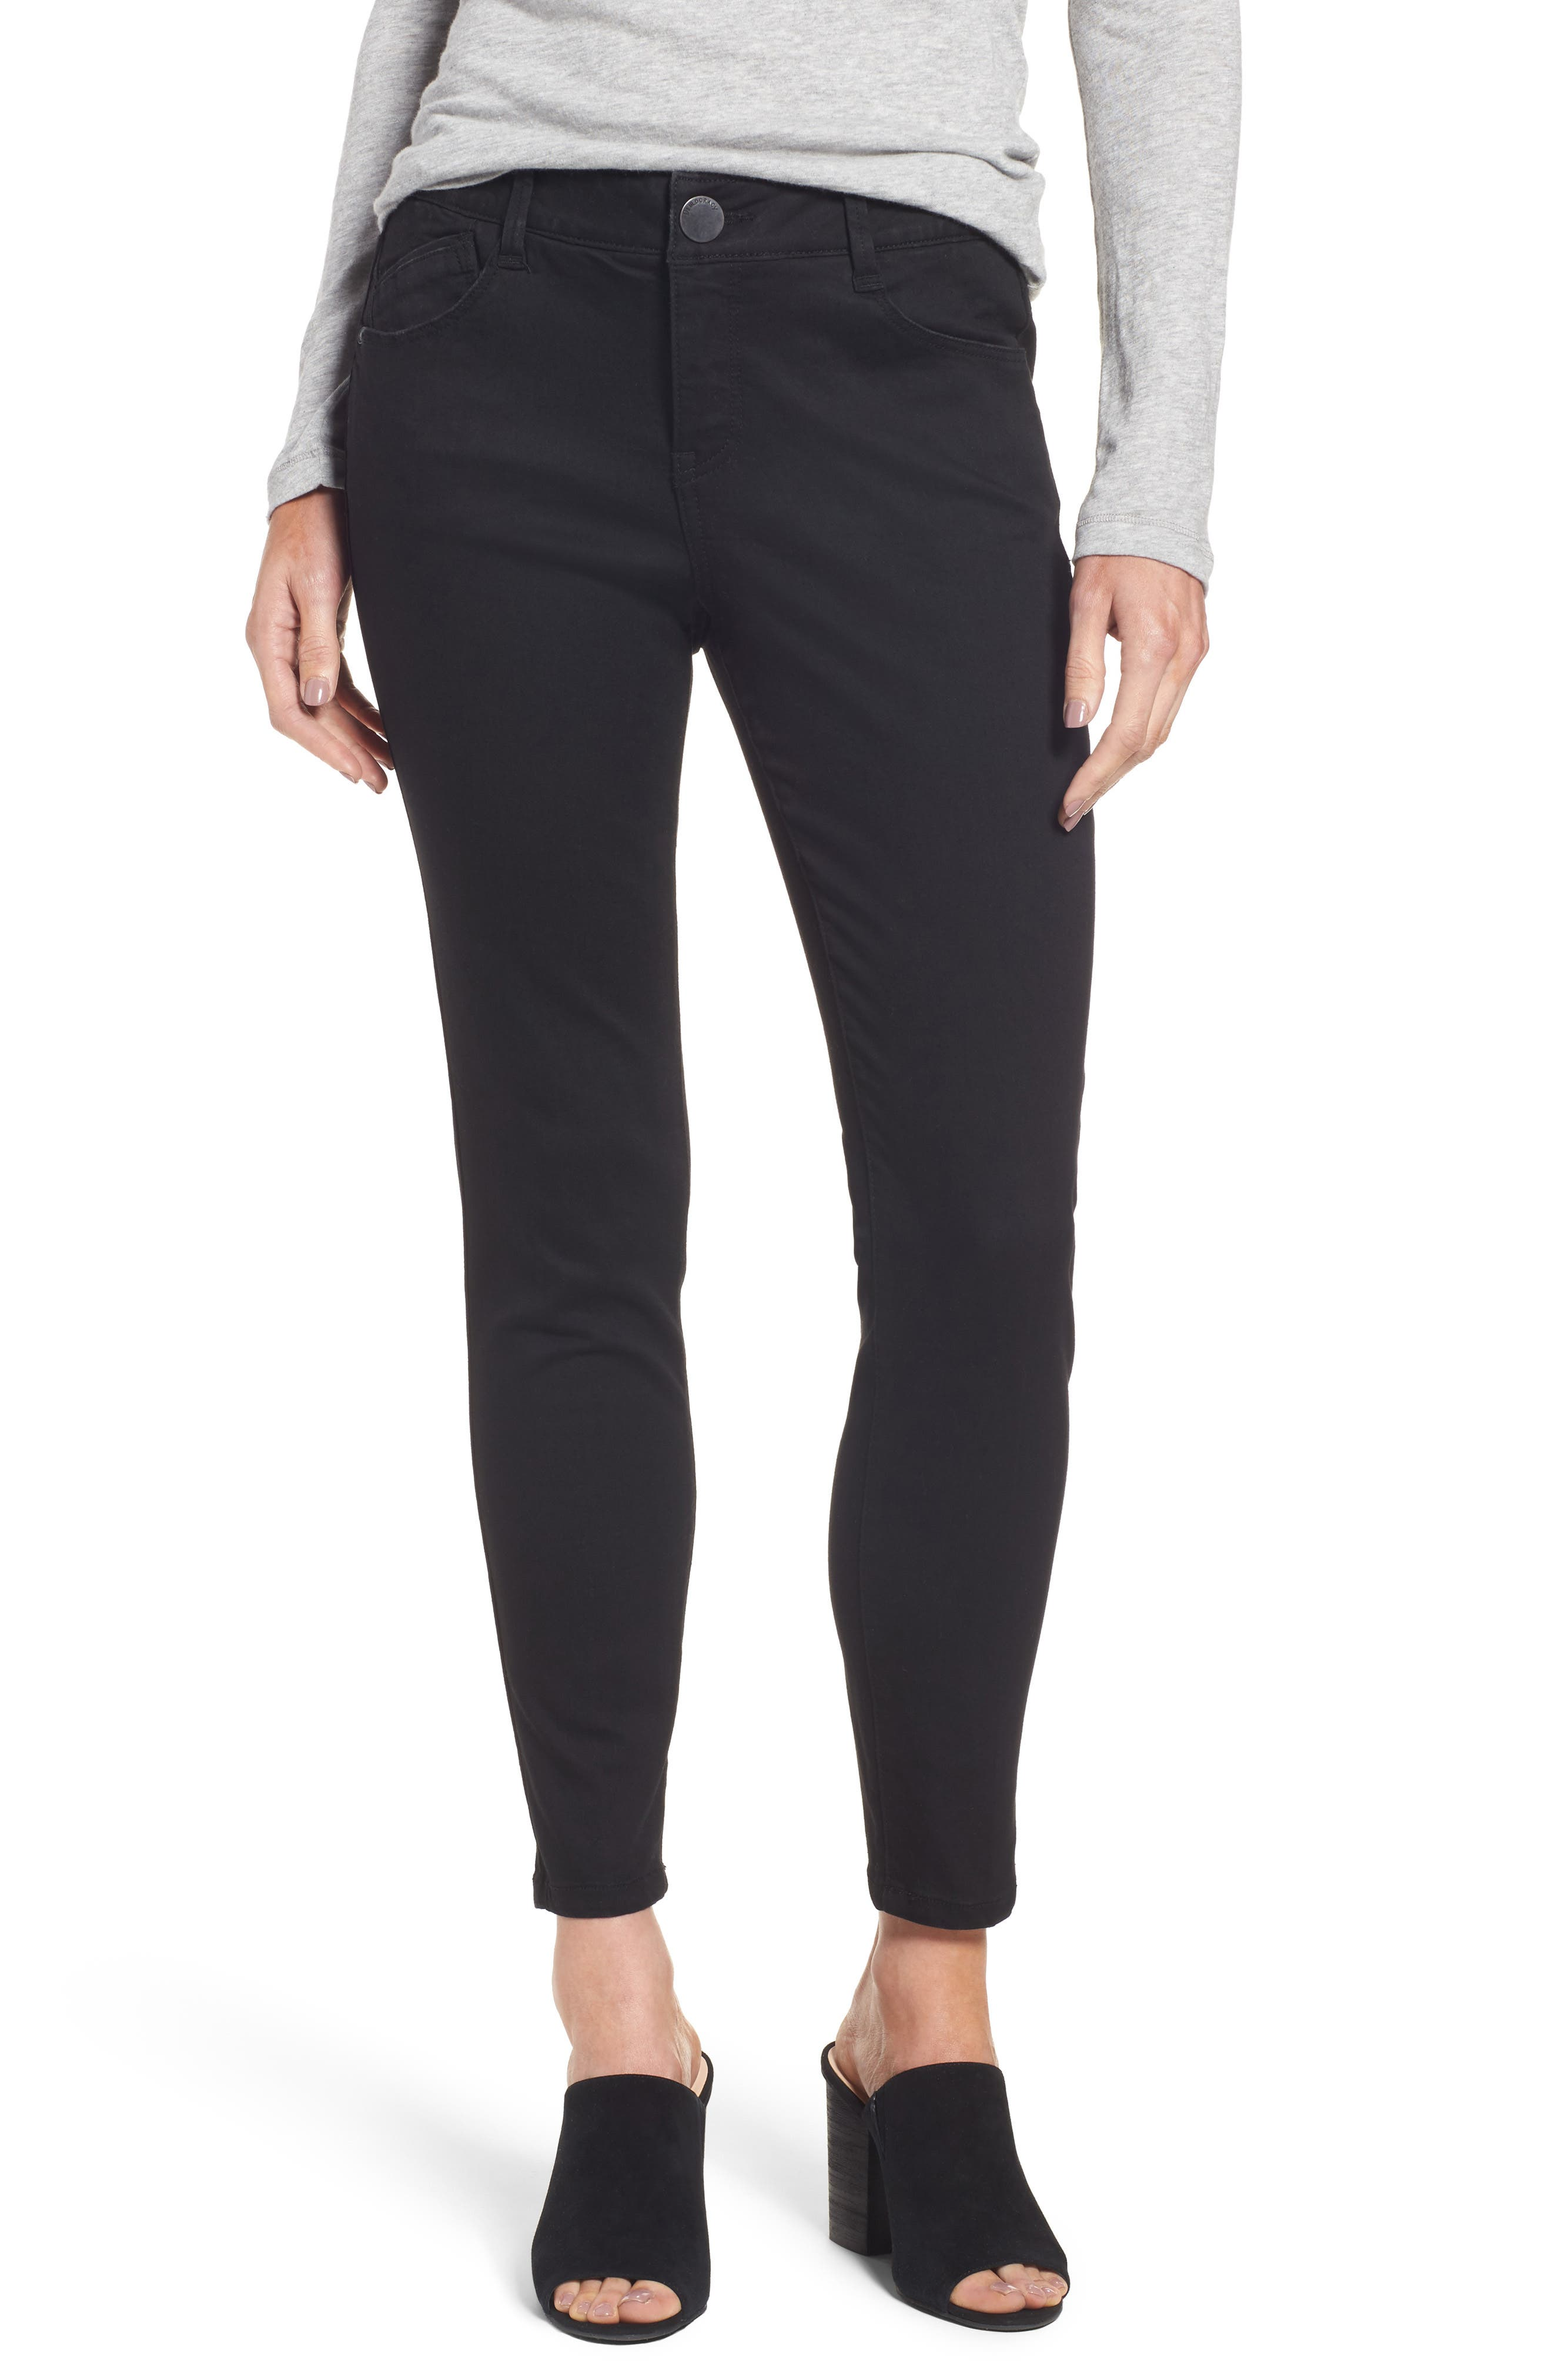 Main Image - Wit & Wisdom Ab-solution Stretch Ankle Skinny Jeans (Regular & Petite) (Nordstrom Exclusive)